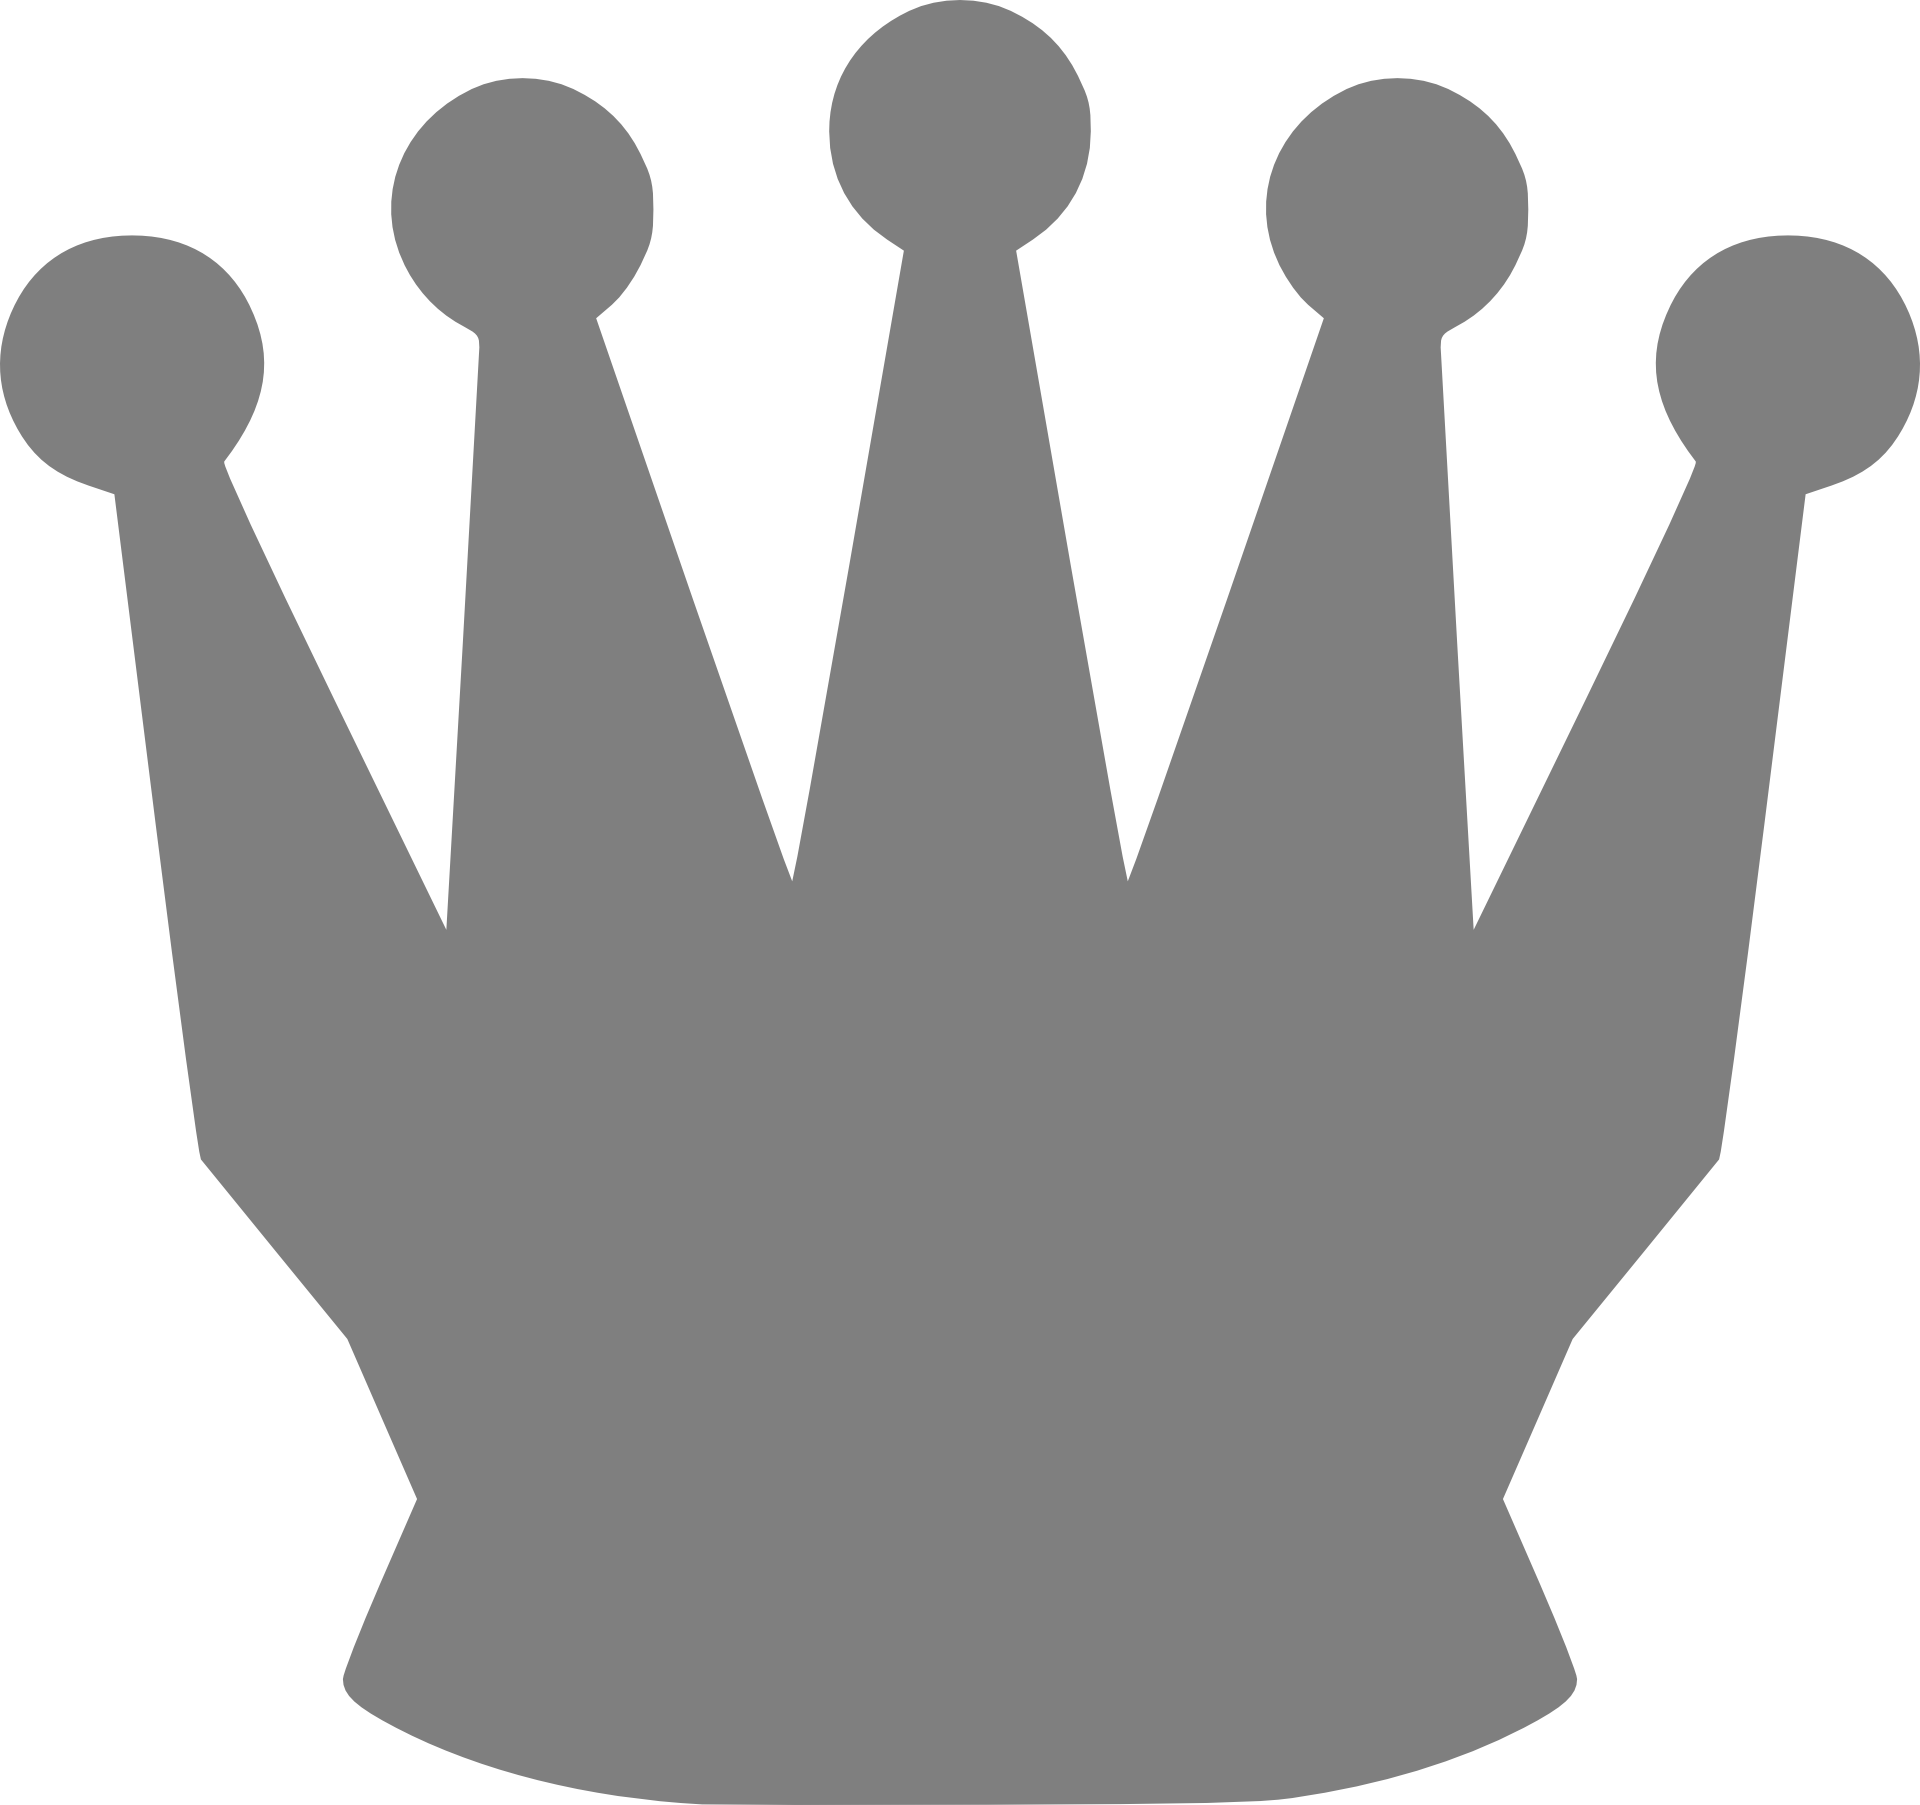 Royal crown clipart black and white jpg free Drawing of royal crown with edges free image jpg free